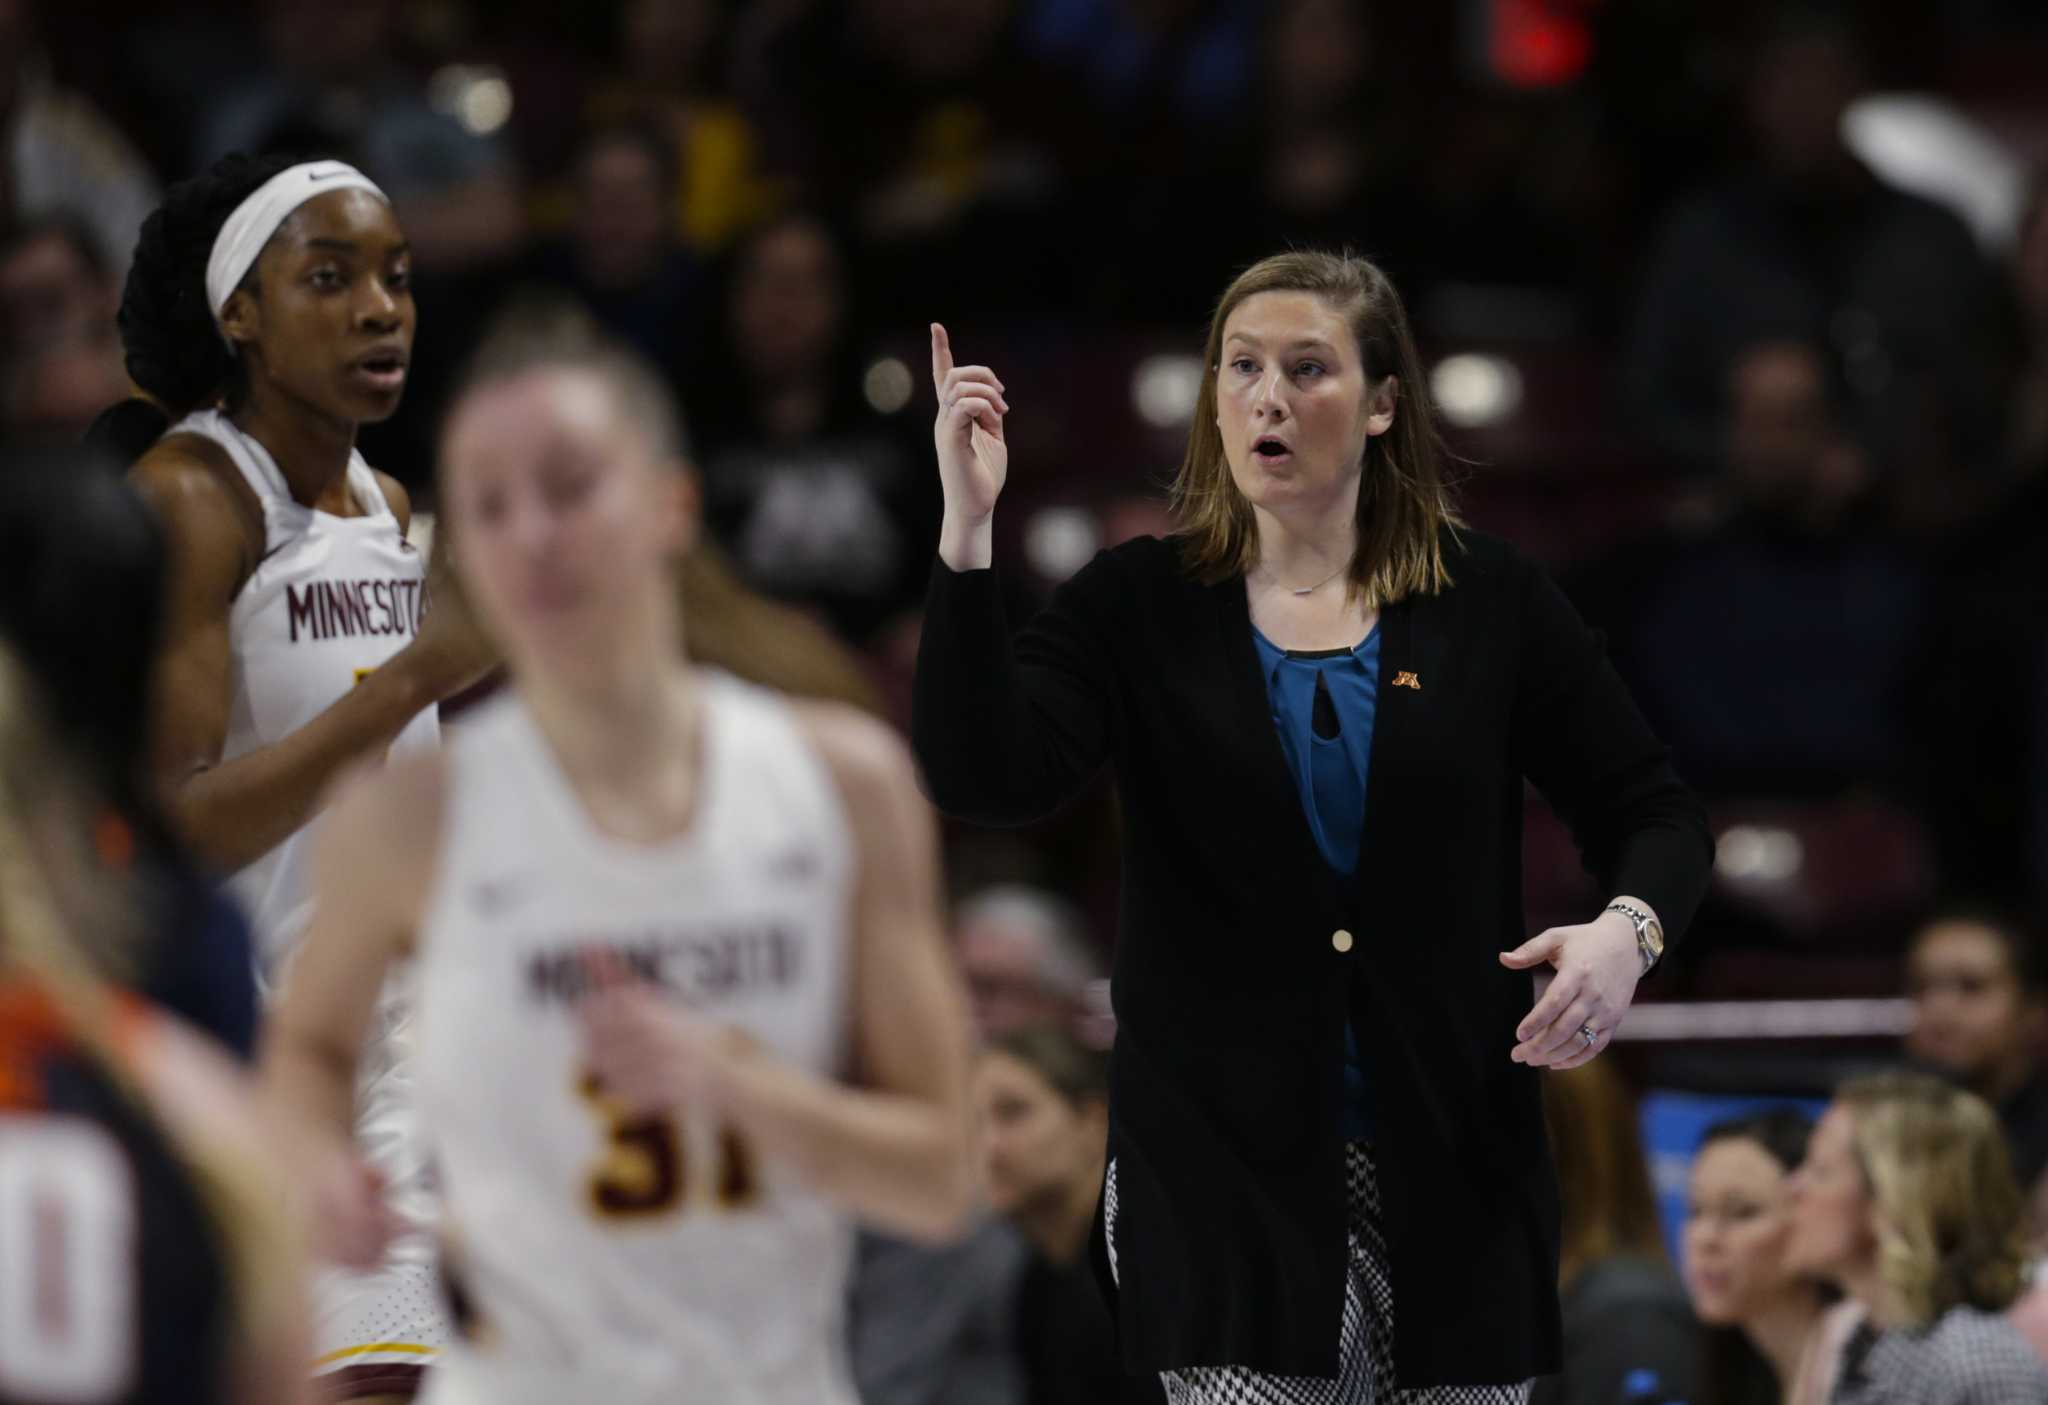 Lindsay Whalen making the transition from player to coach